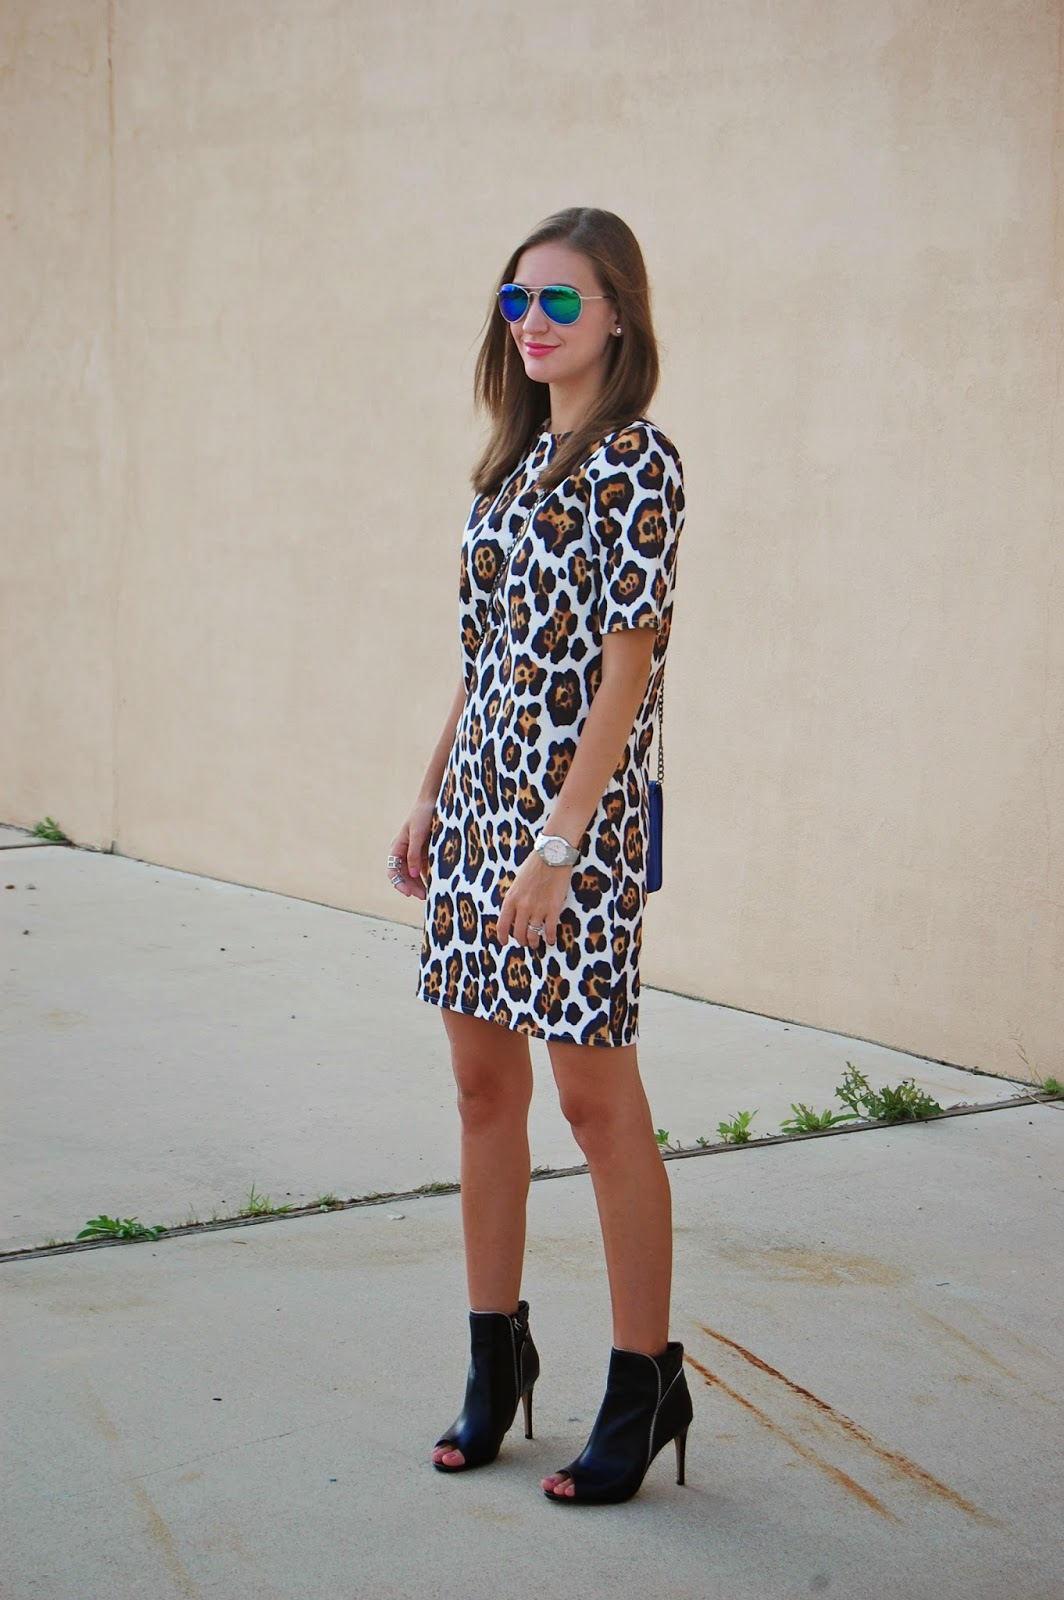 Wearing Leopard Shift Dress, Nordstrom Anniversary Sale Halogen Claudia zipper bootie, Halogen leather foldover crossbody clutch